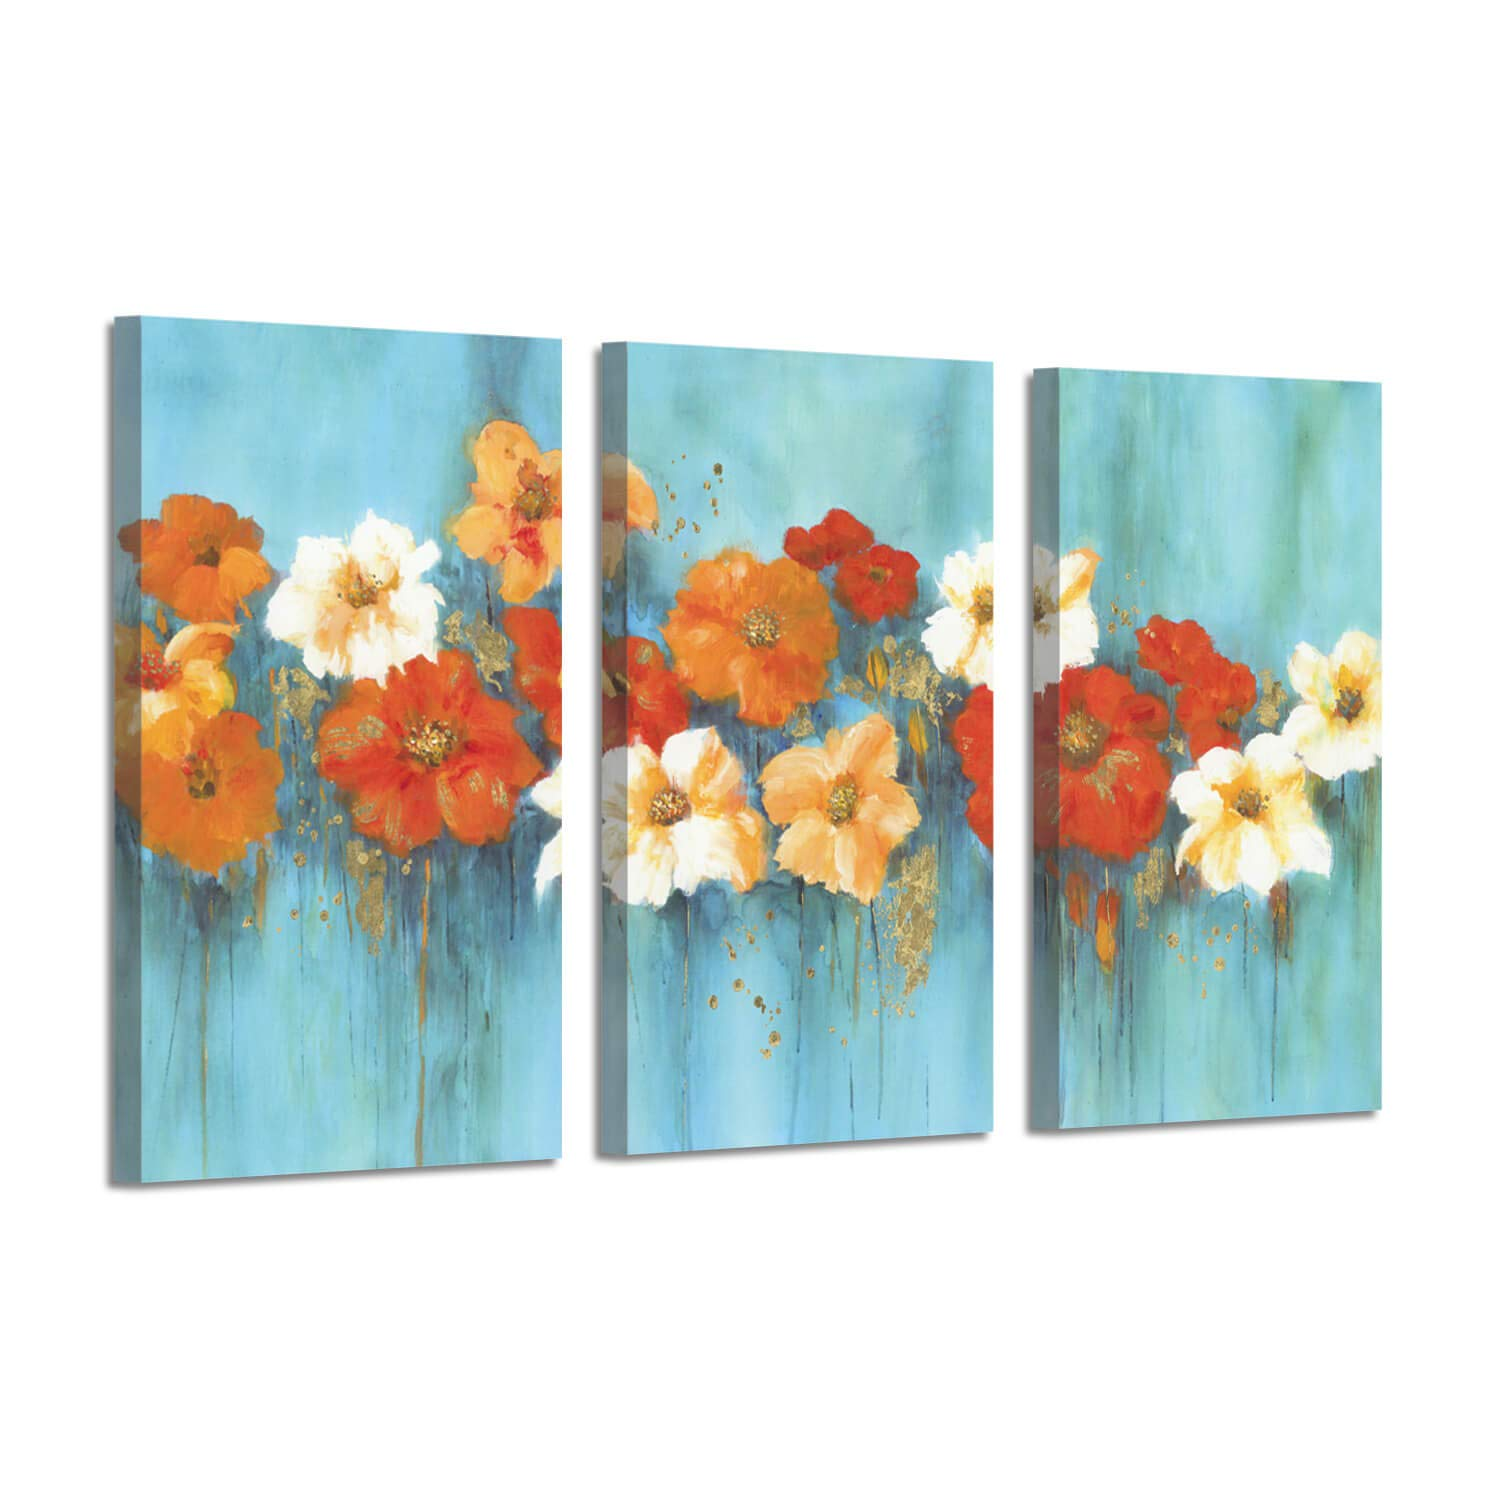 Floral Abstract Pictures Botanical Art : Flower Garden Gold Foil Painting on Canvas (26'' x 16'' x 3 Panels) for Wall